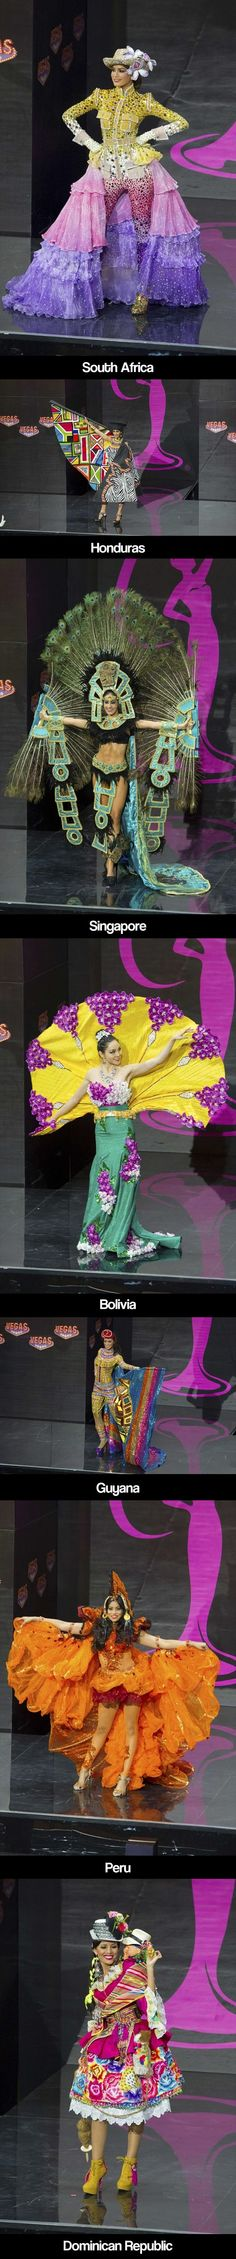 Miss Universe parade of national costumes... and then there's USA *facepalm*